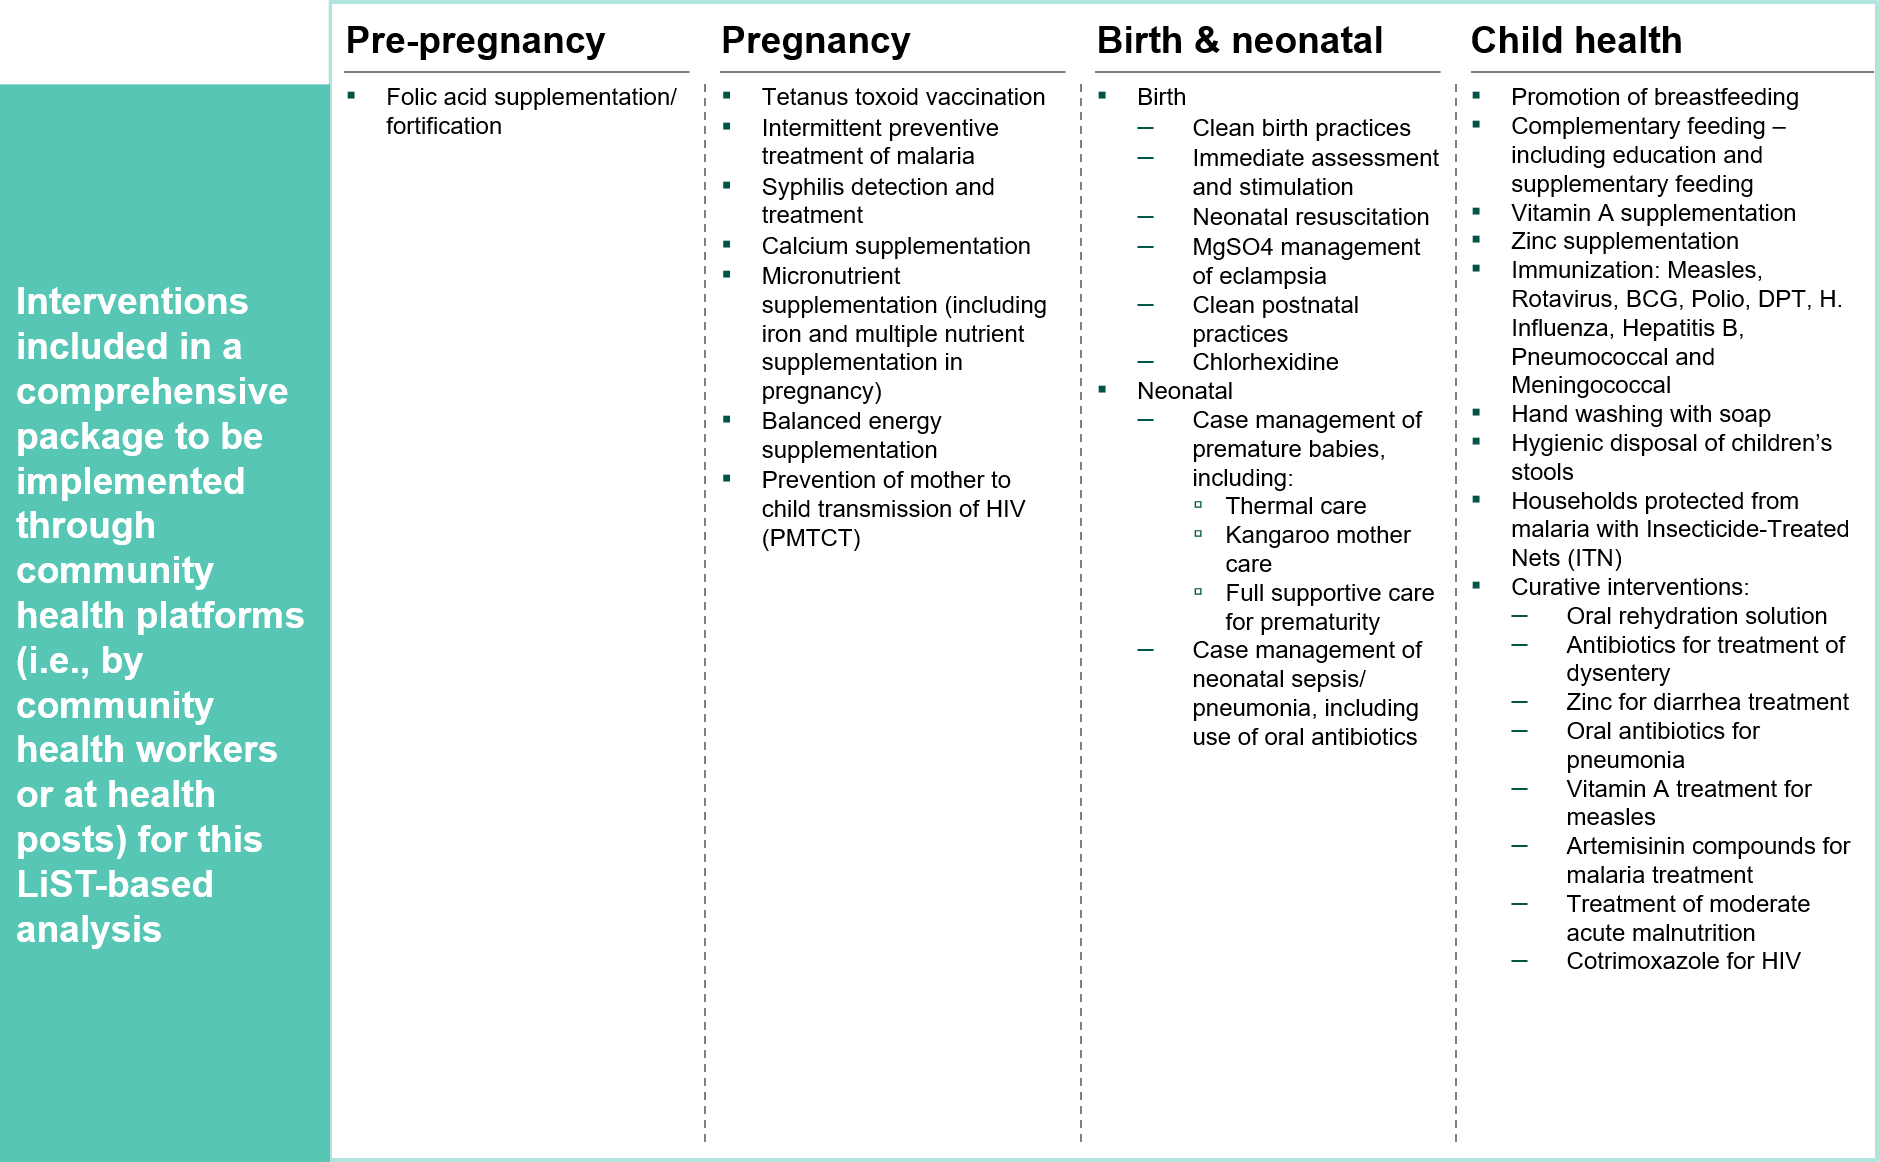 Figure 3. Interventions selected as part of the comprehensive package for this analysis